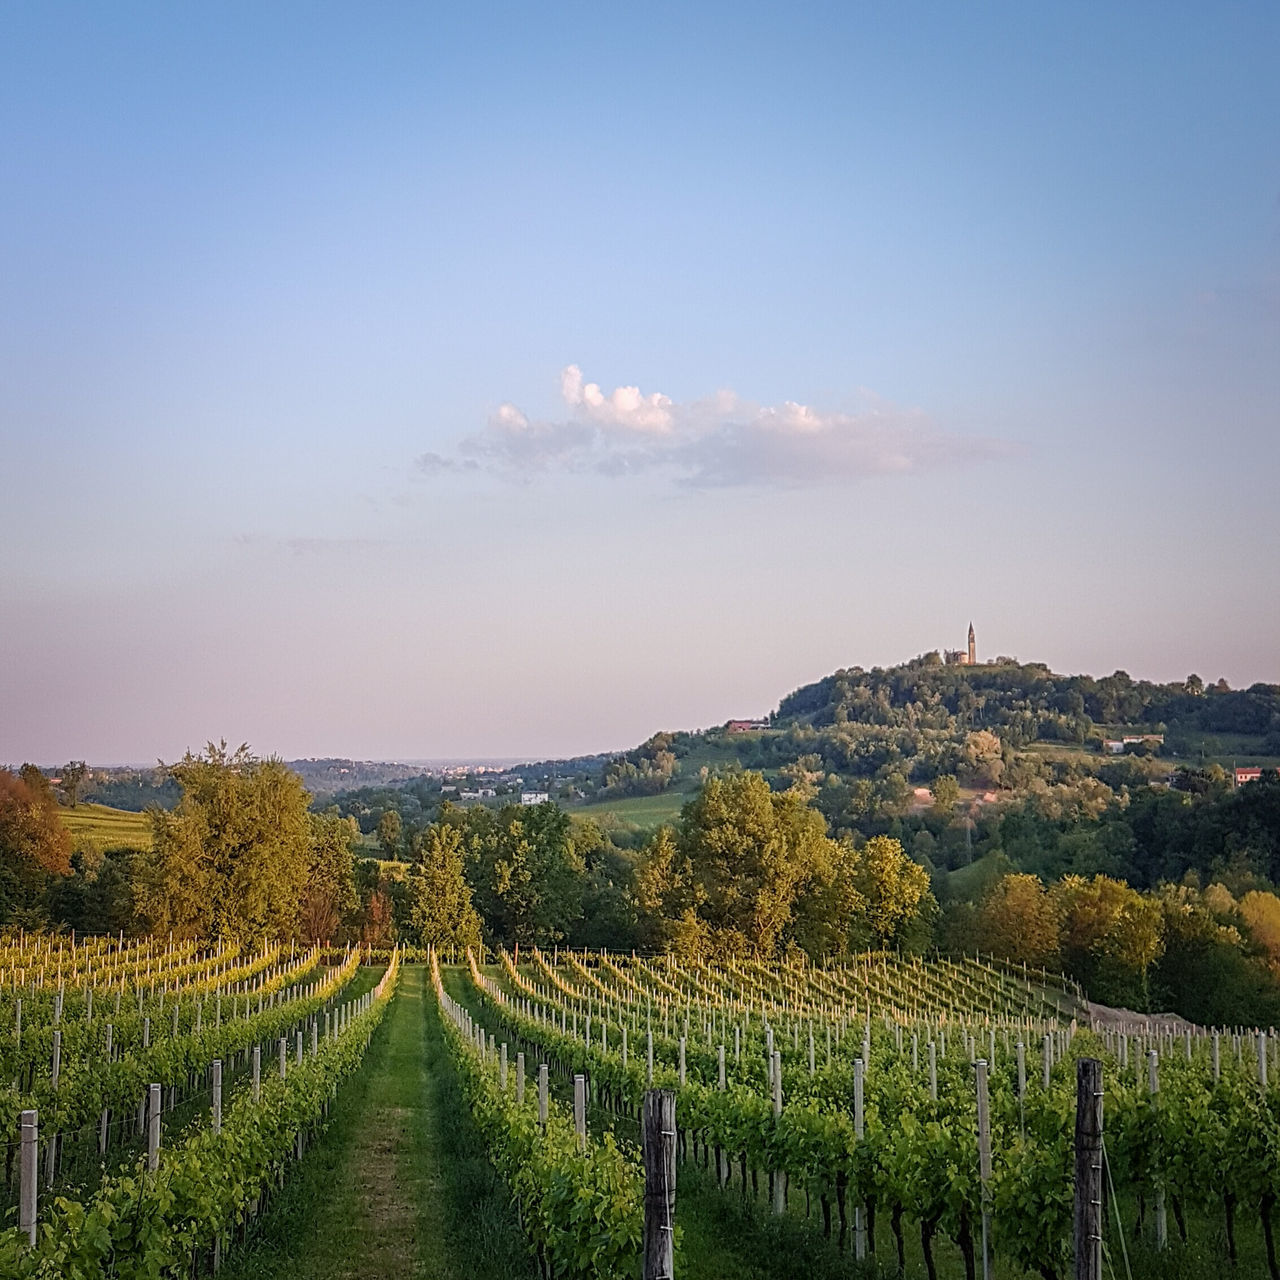 The Great Outdoors With Adobe Vineyards  Proseccosuperiore Proseccohills Landscape Sunset Sunset #sun #clouds #skylovers #sky #nature #beautifulinnature #naturalbeauty #photography #landscape